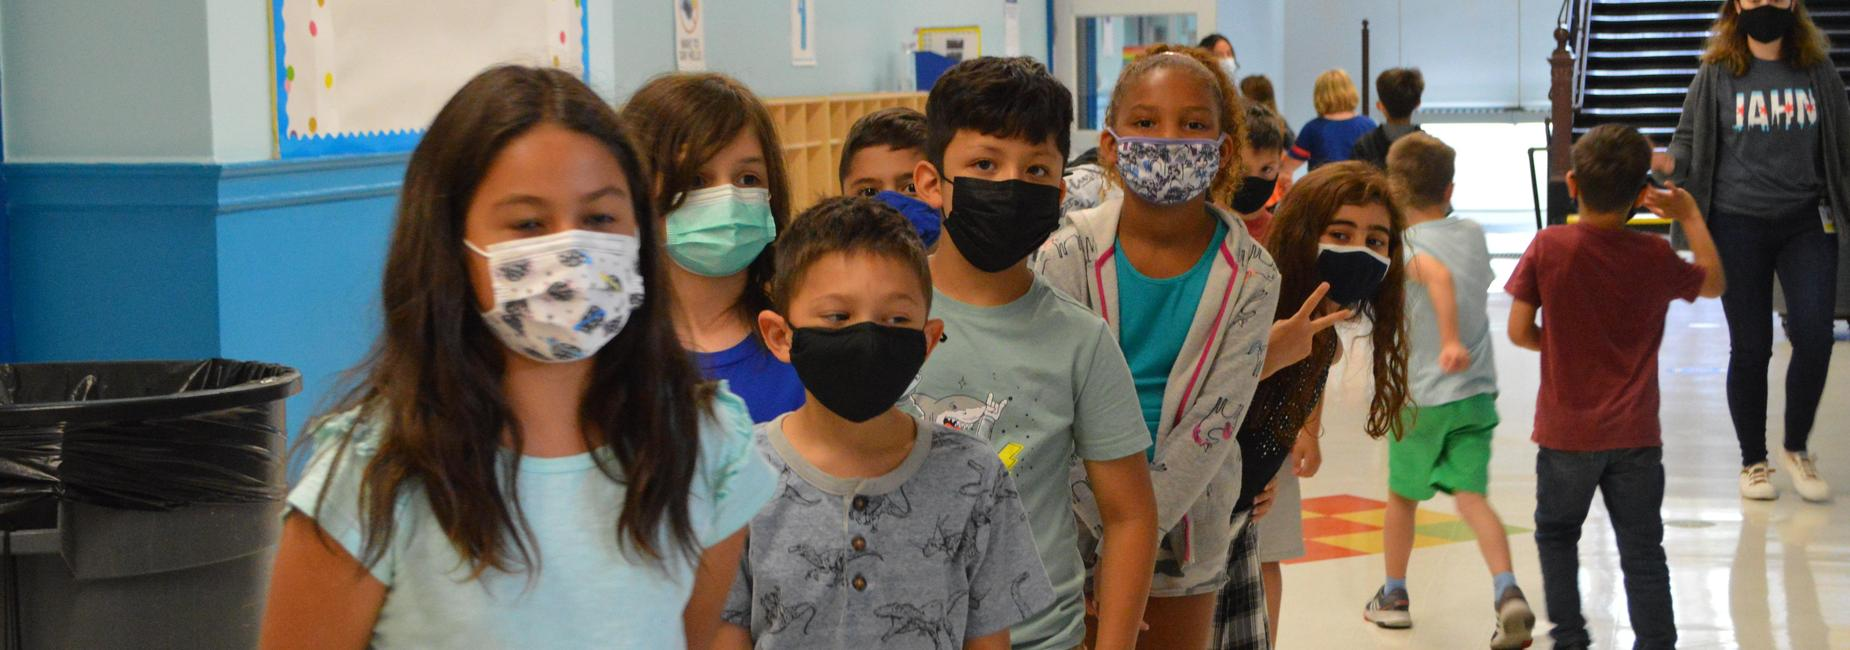 kids in line with masks